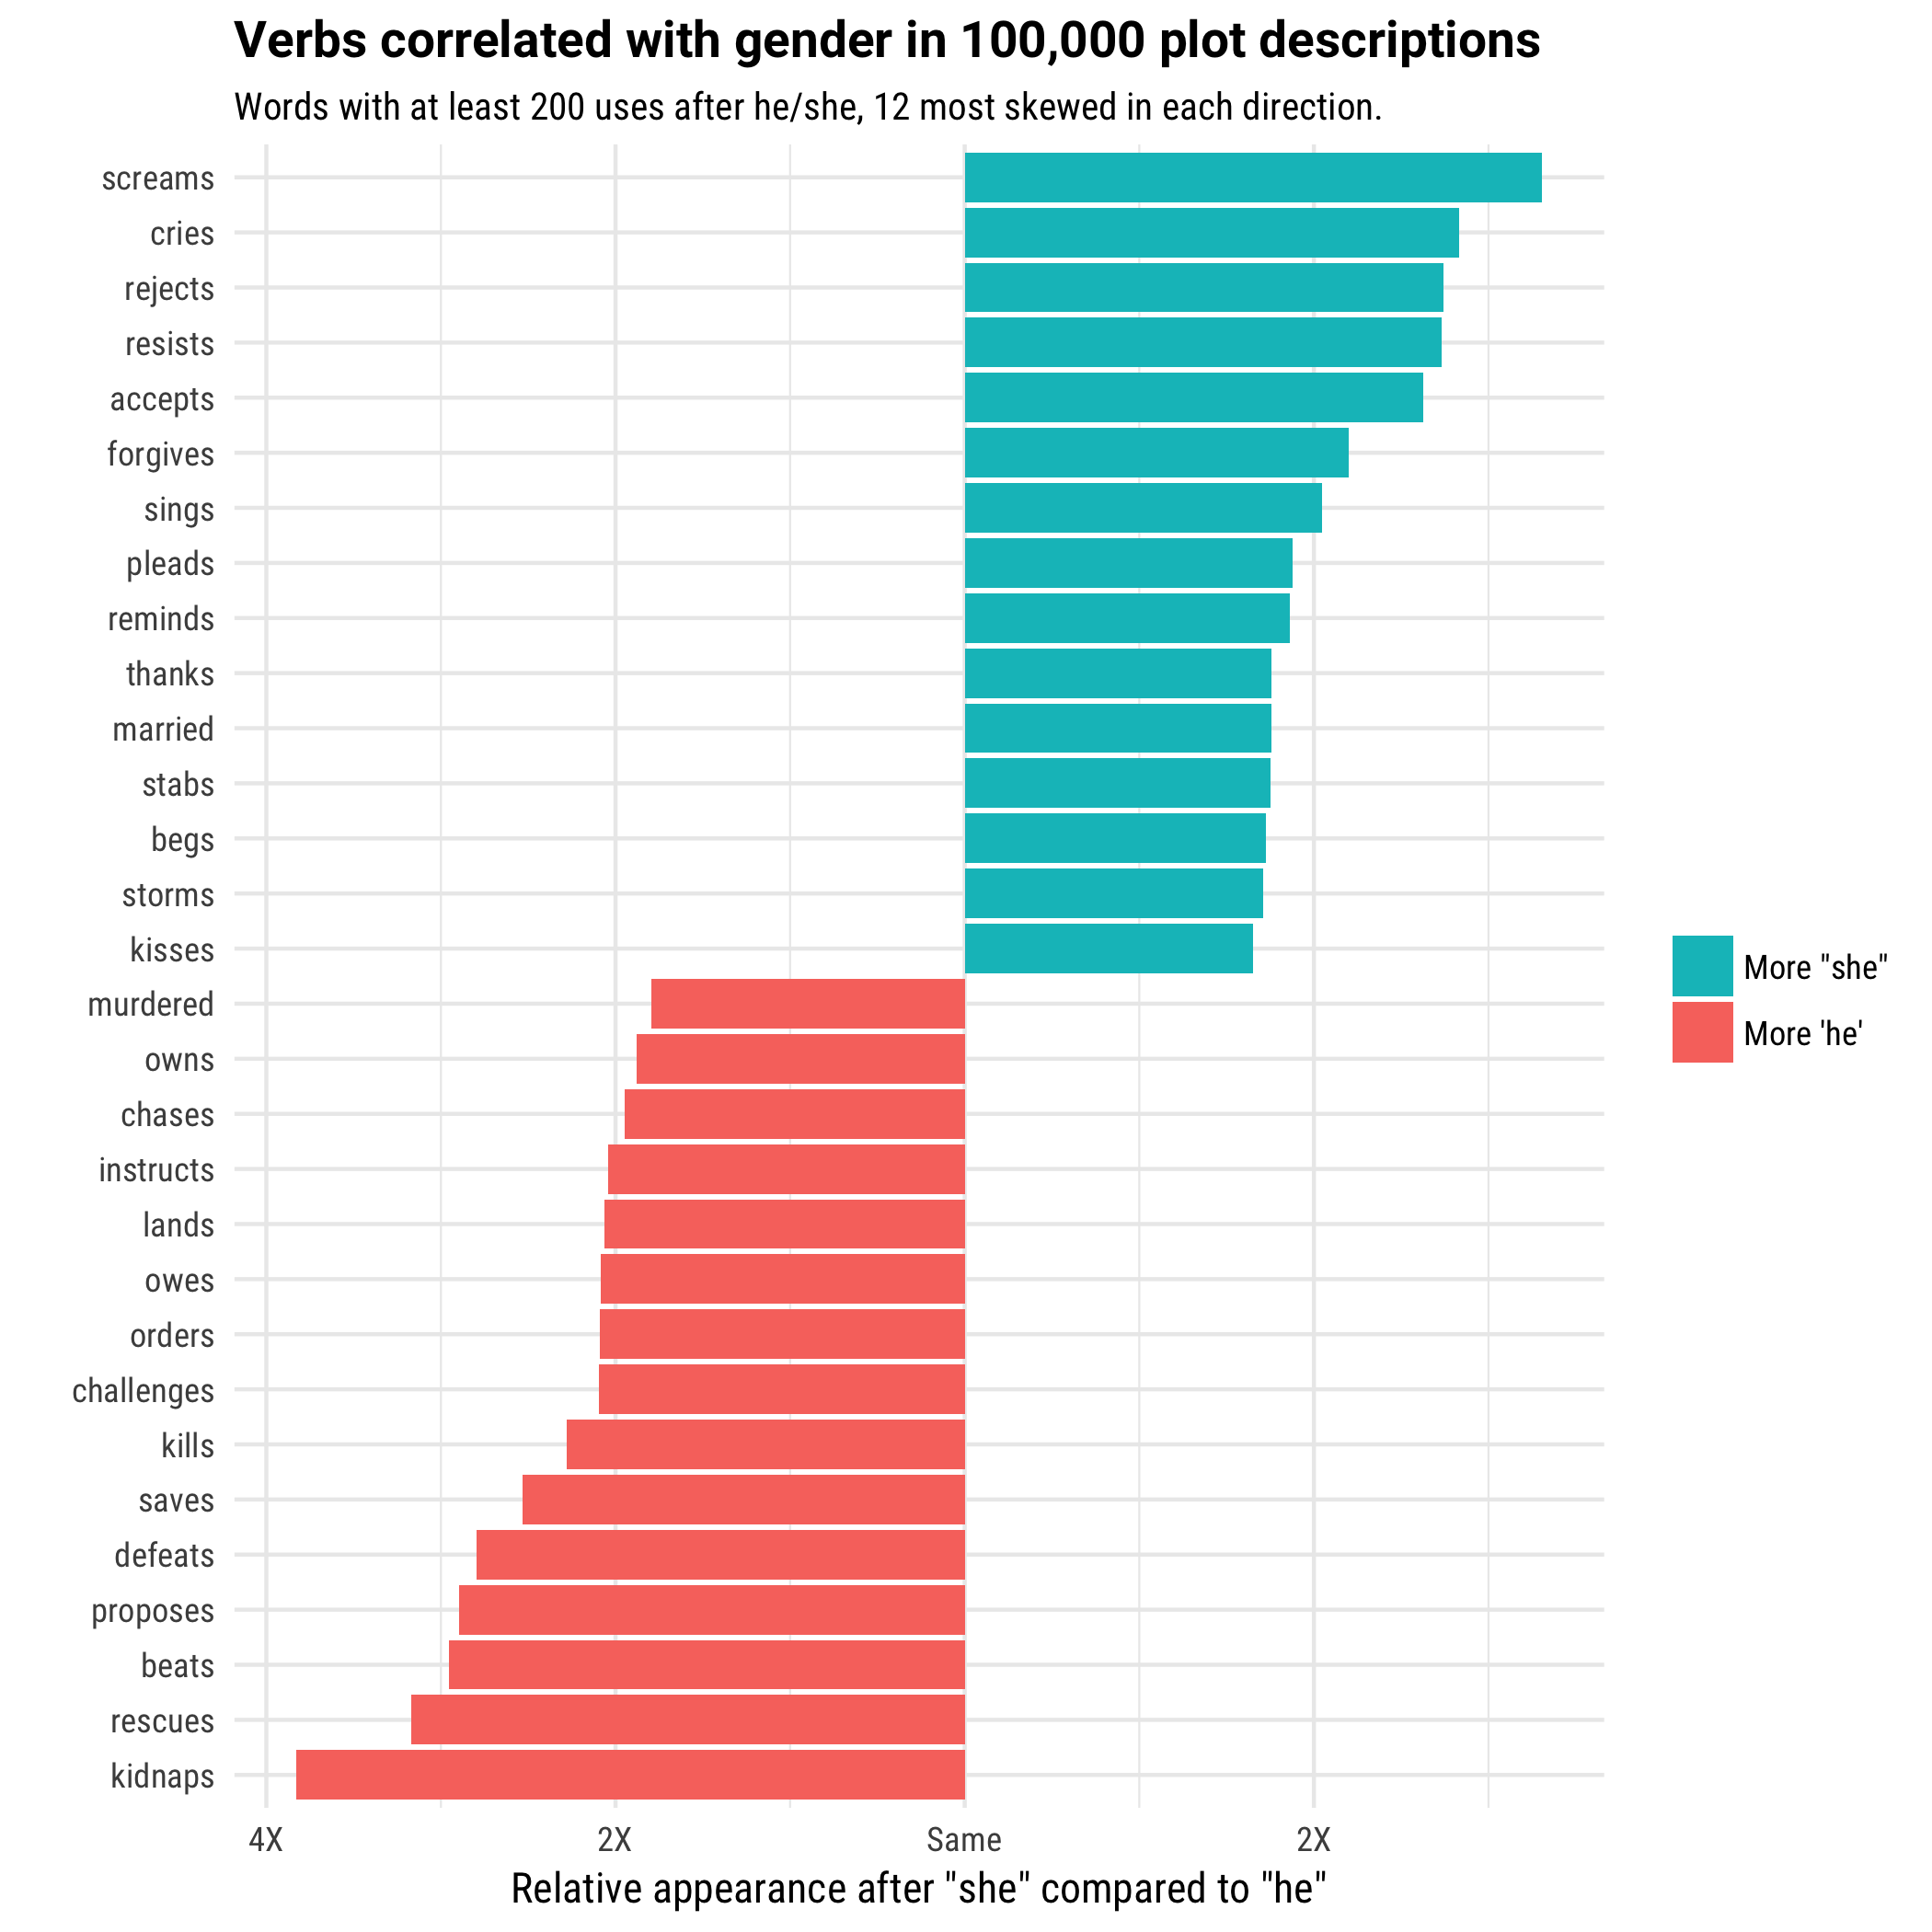 Gender and verbs across 100,000 stories: a tidy analysis